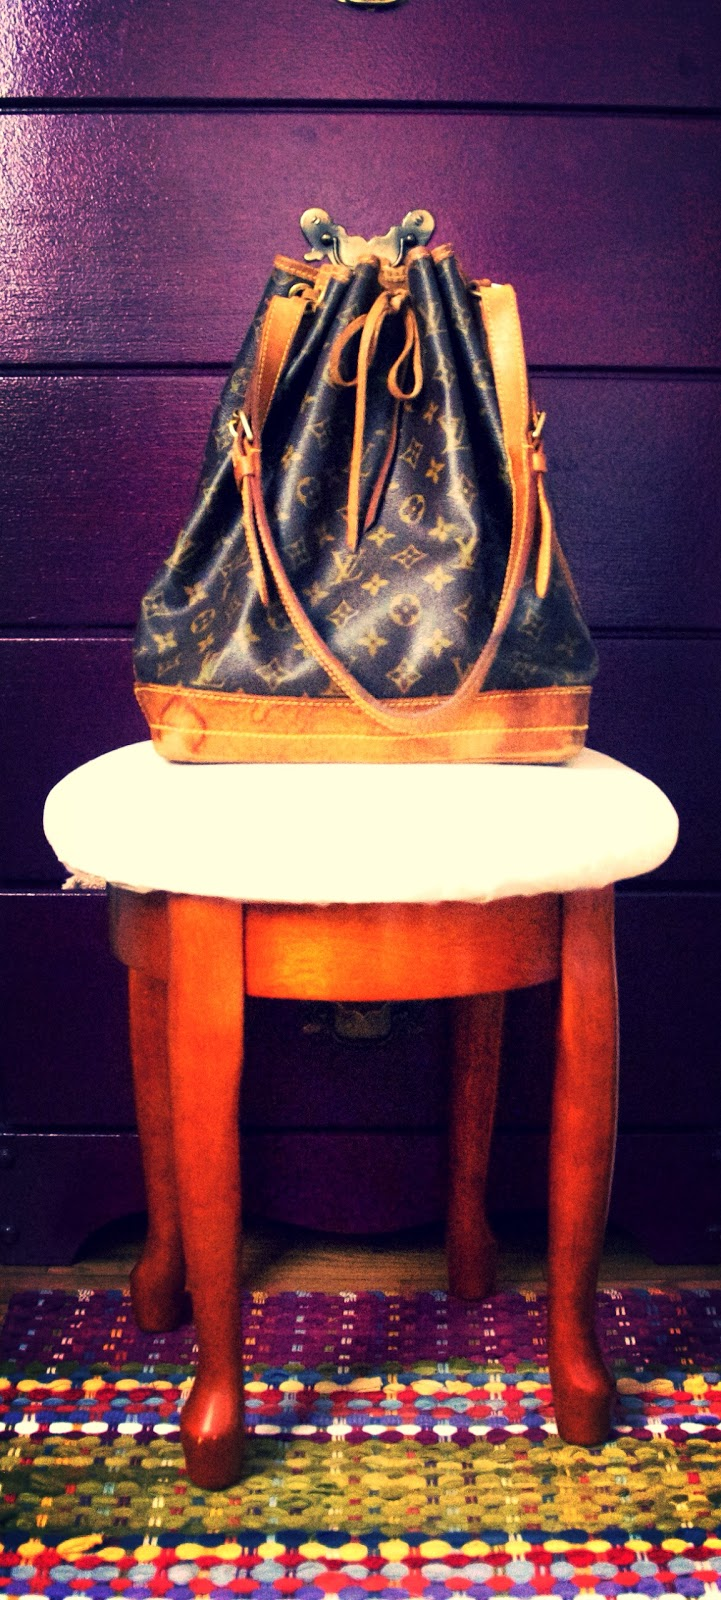 Louis Vuitton Noé handbag vintage